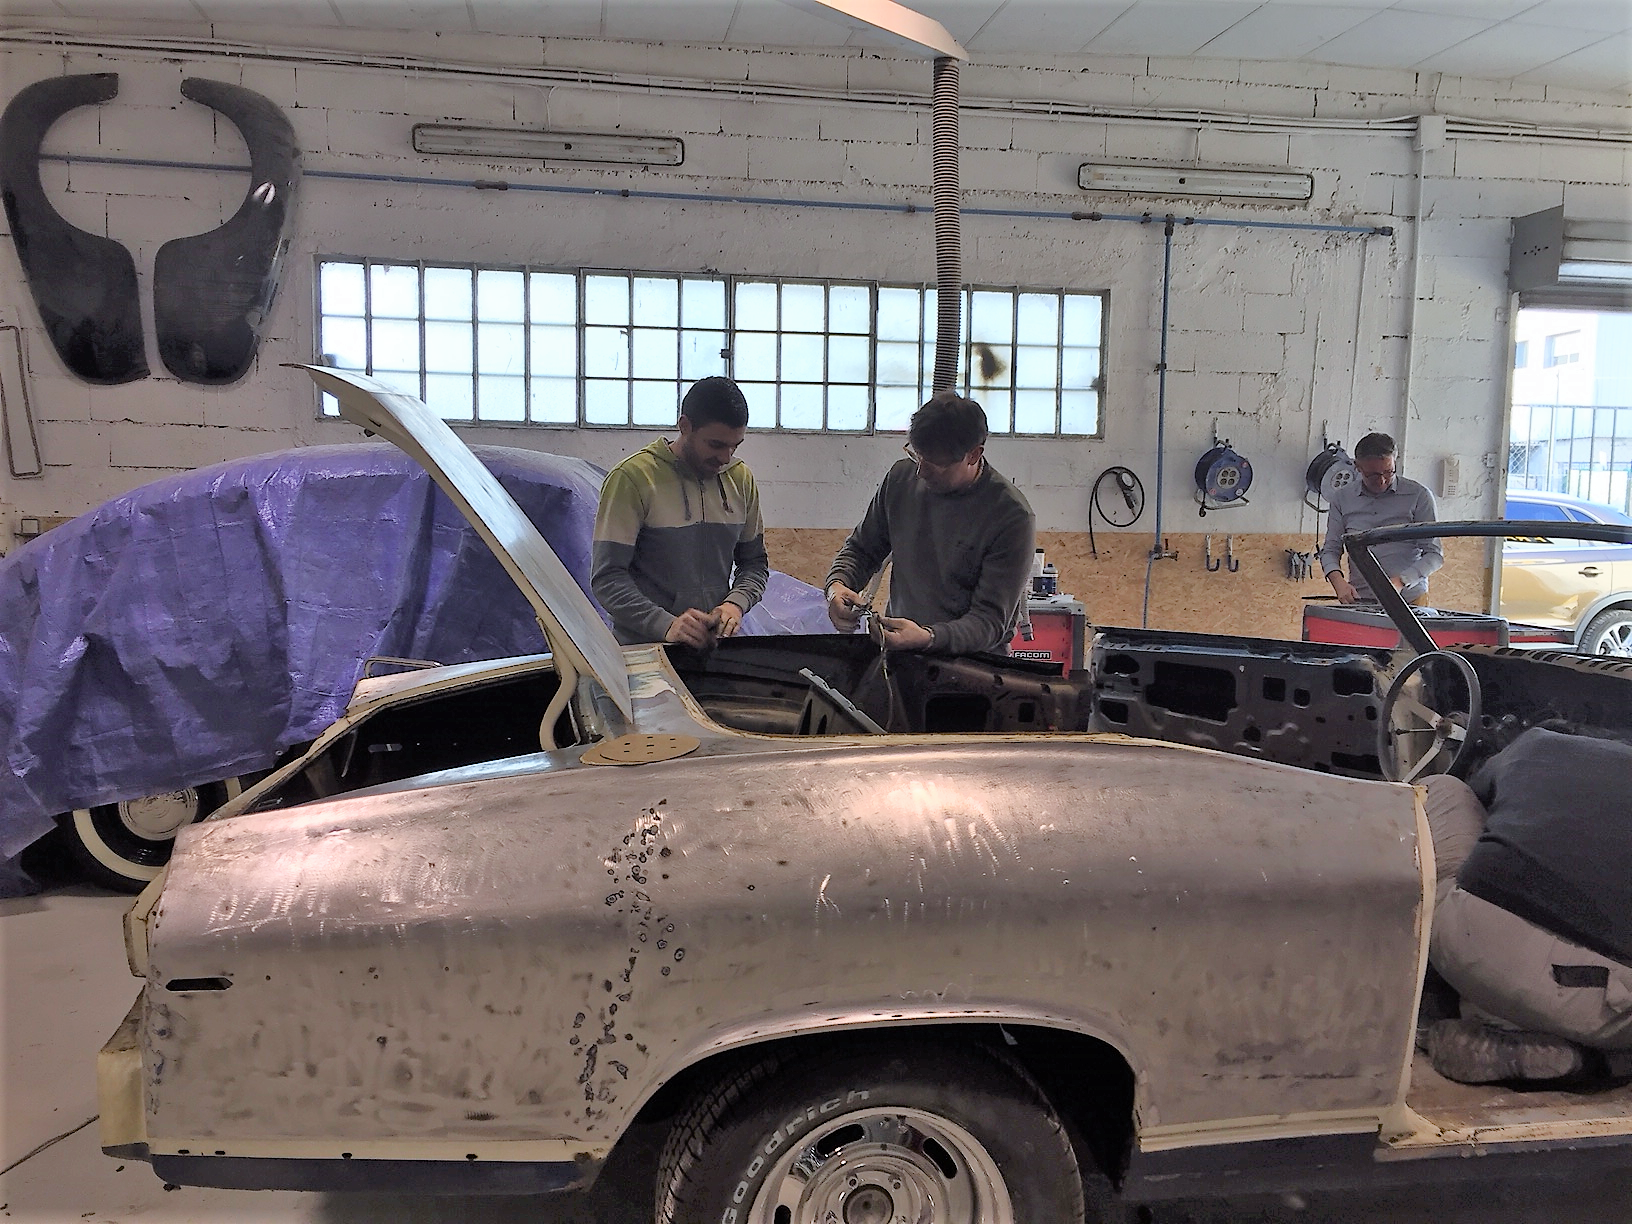 1969 Chevelle during restoration